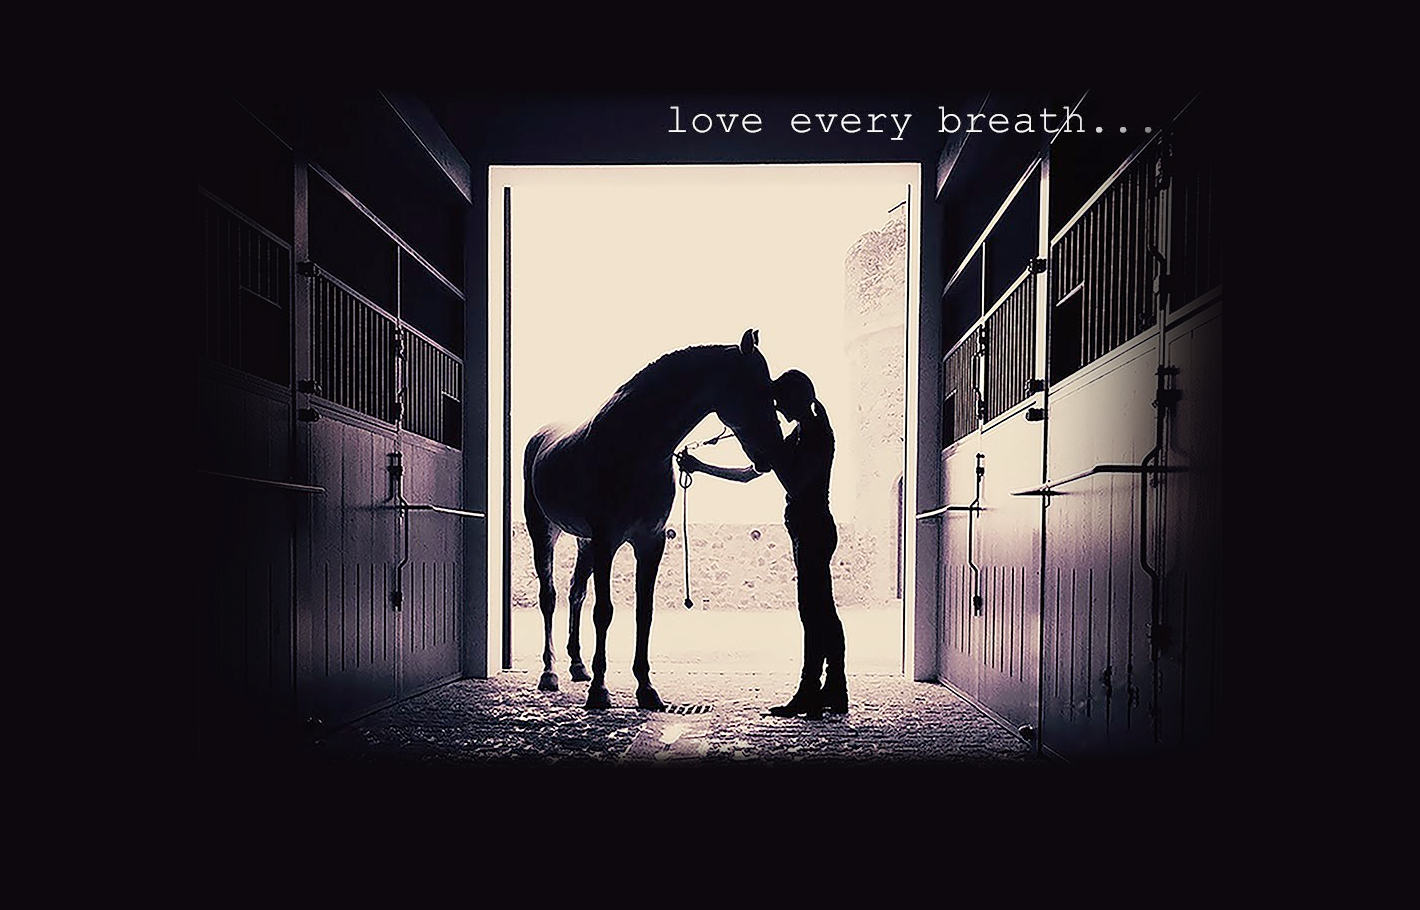 LOVE EVERY BREATH